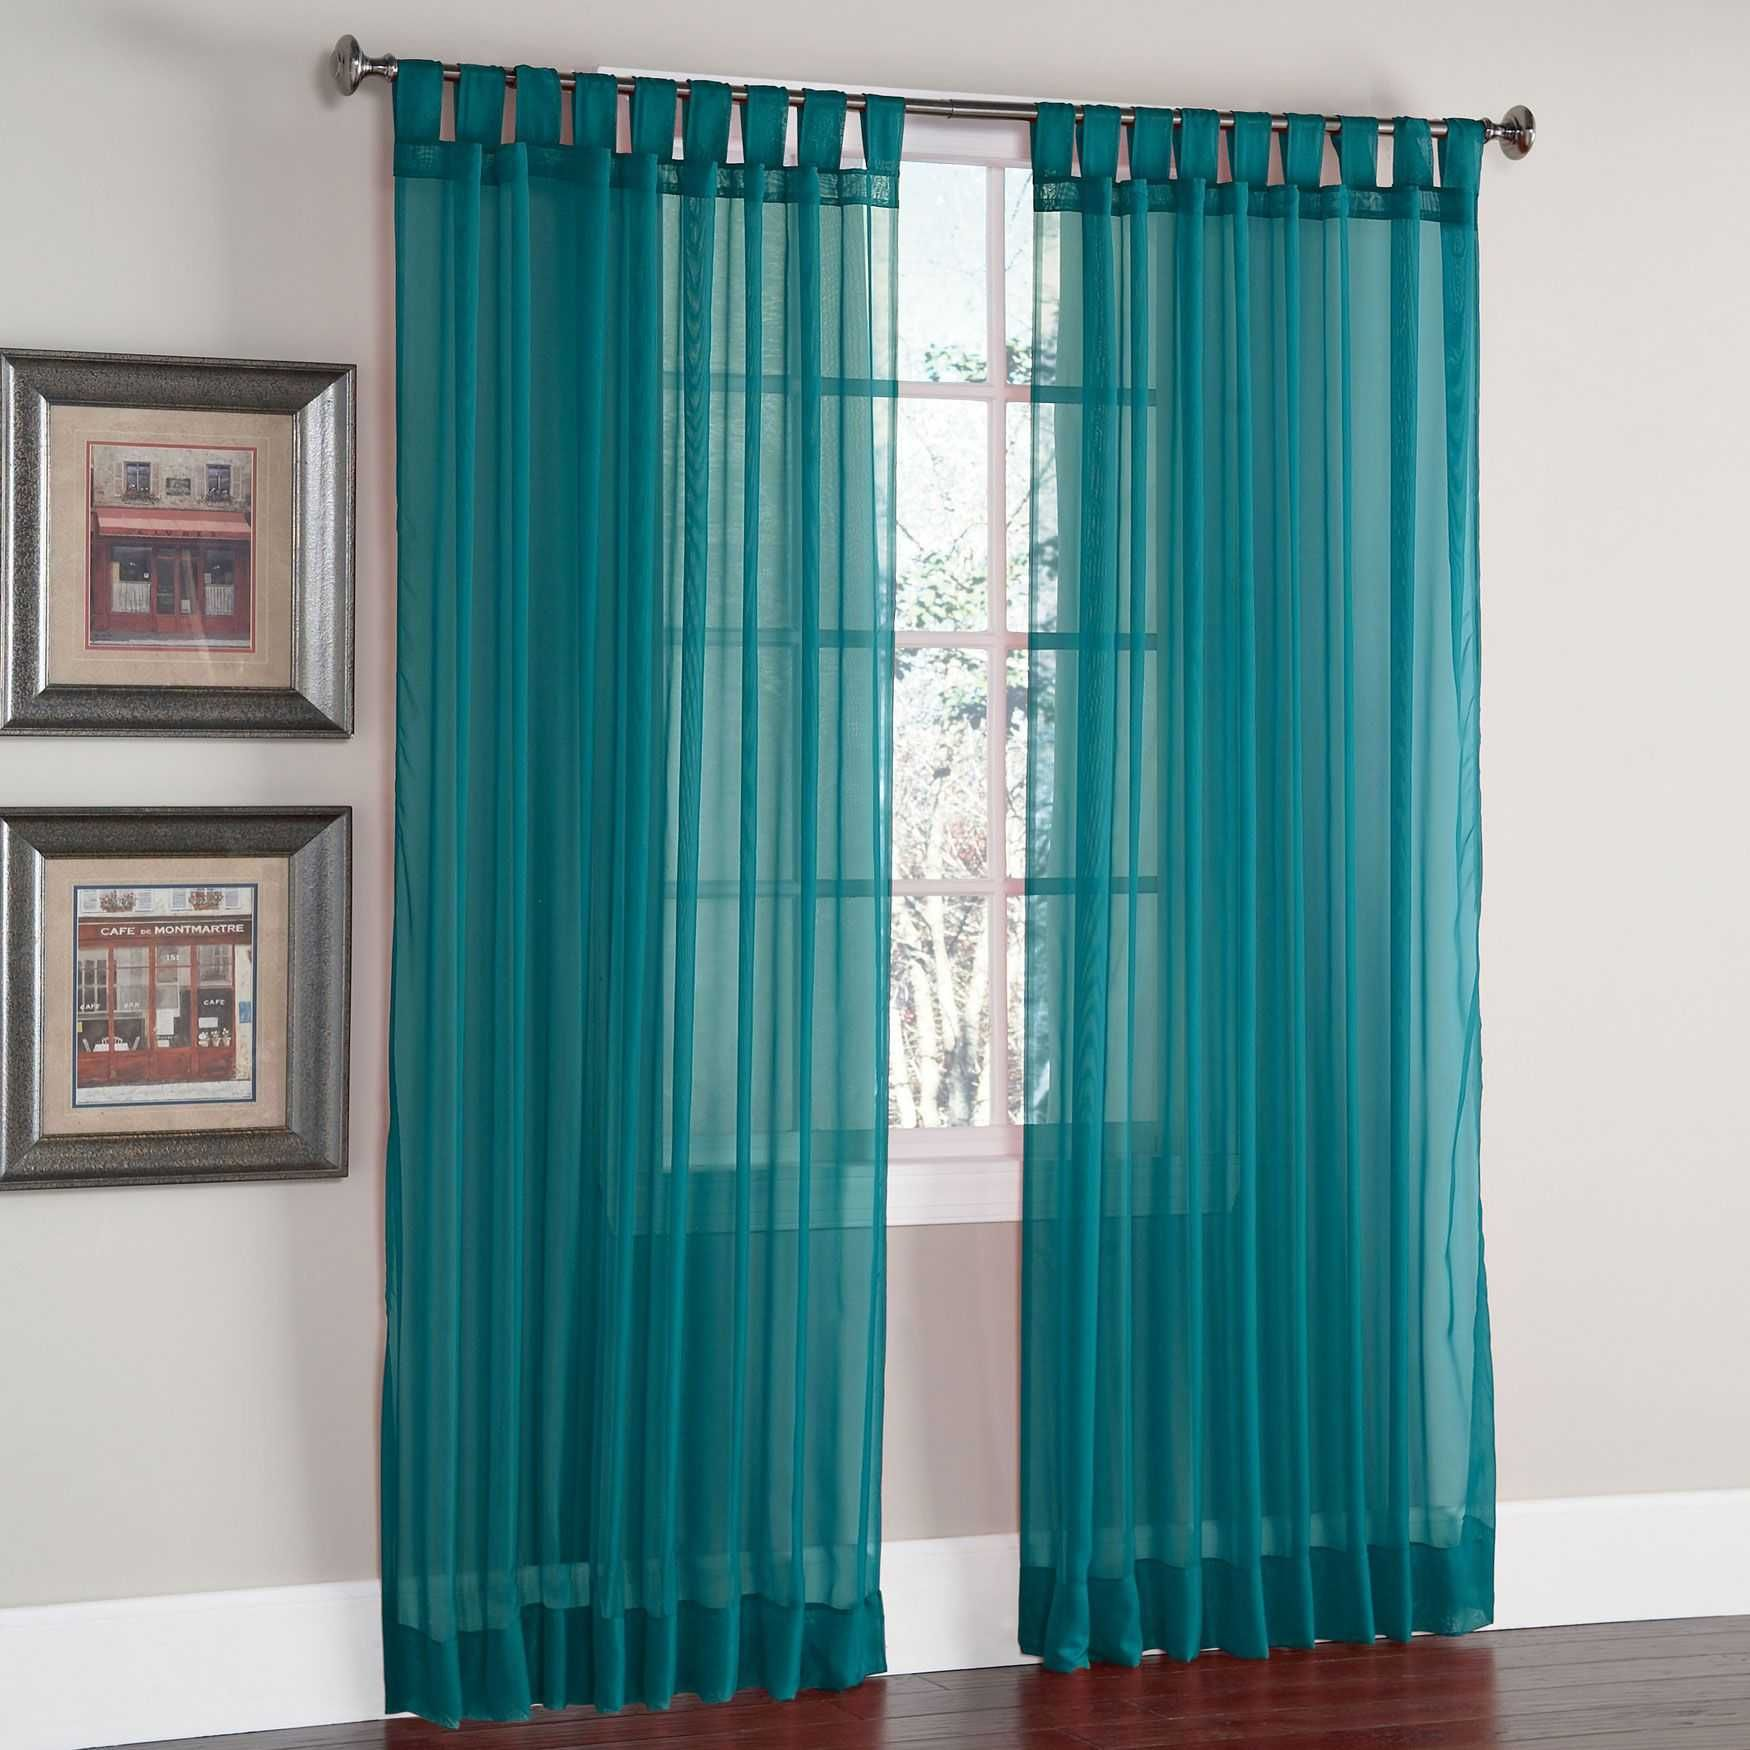 Fabulous Teal Kitchen Curtains With Decoration Grey Curtains Living Room Teal Living Rooms Teal Kitchen Curtains